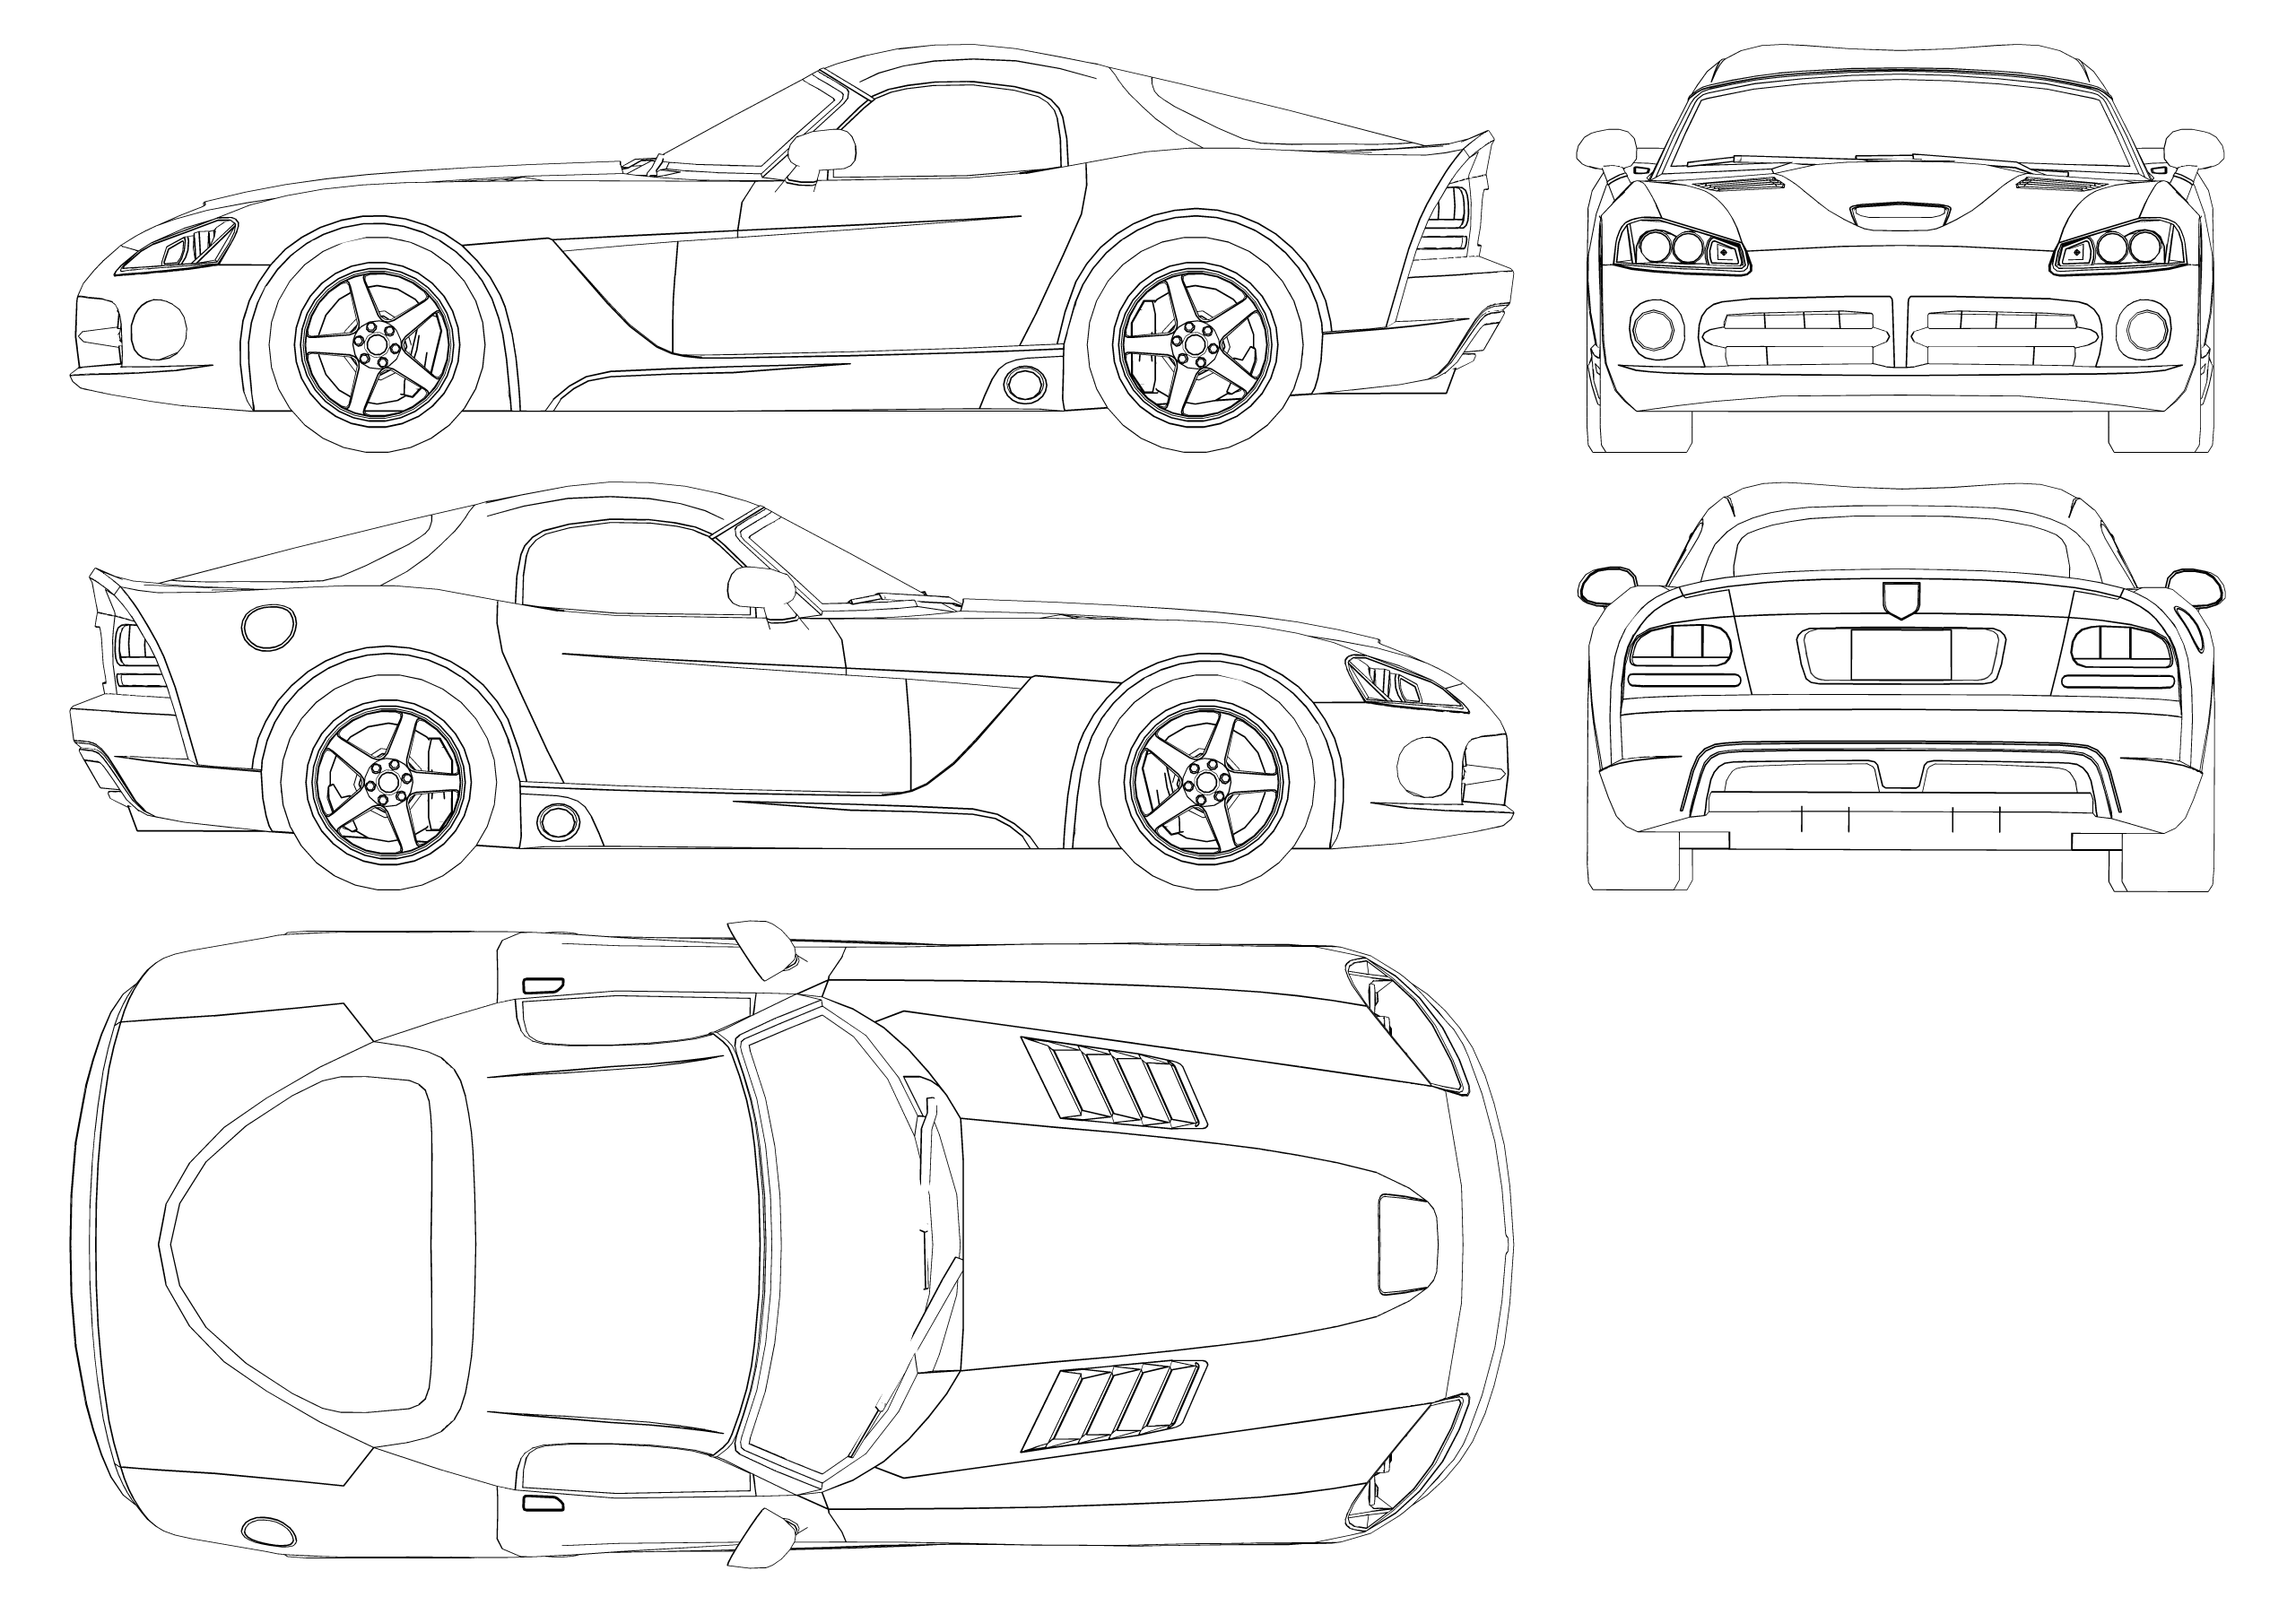 Dodge Viper Srt10 Blueprint